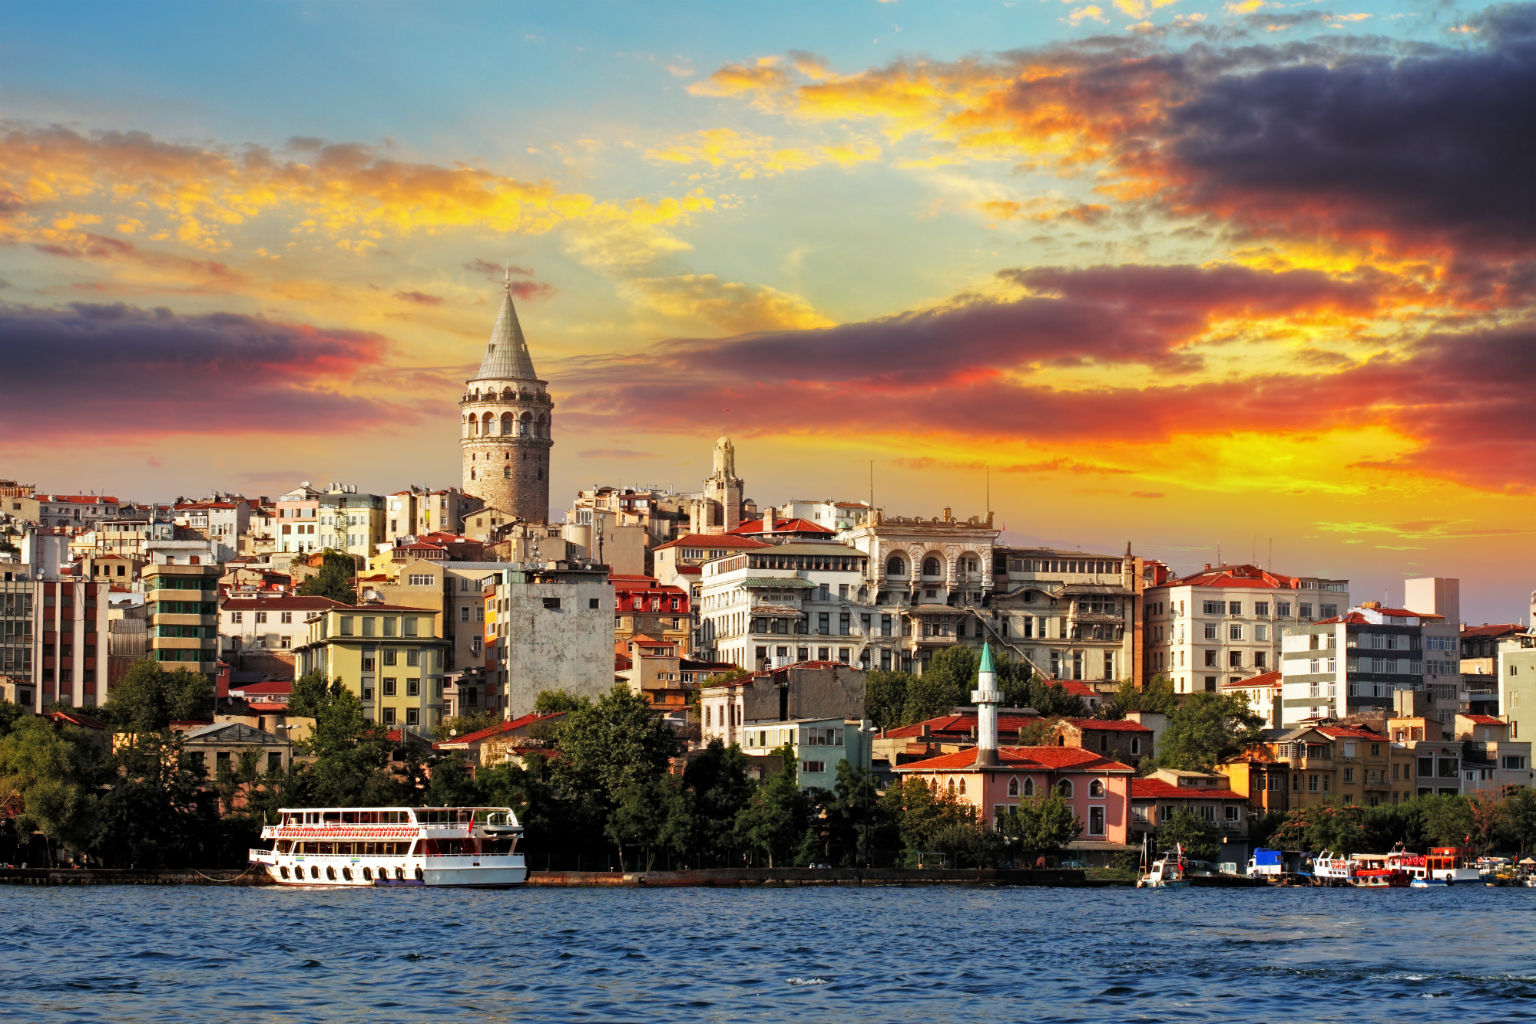 Nice wallpapers Istanbul  1536x1024px